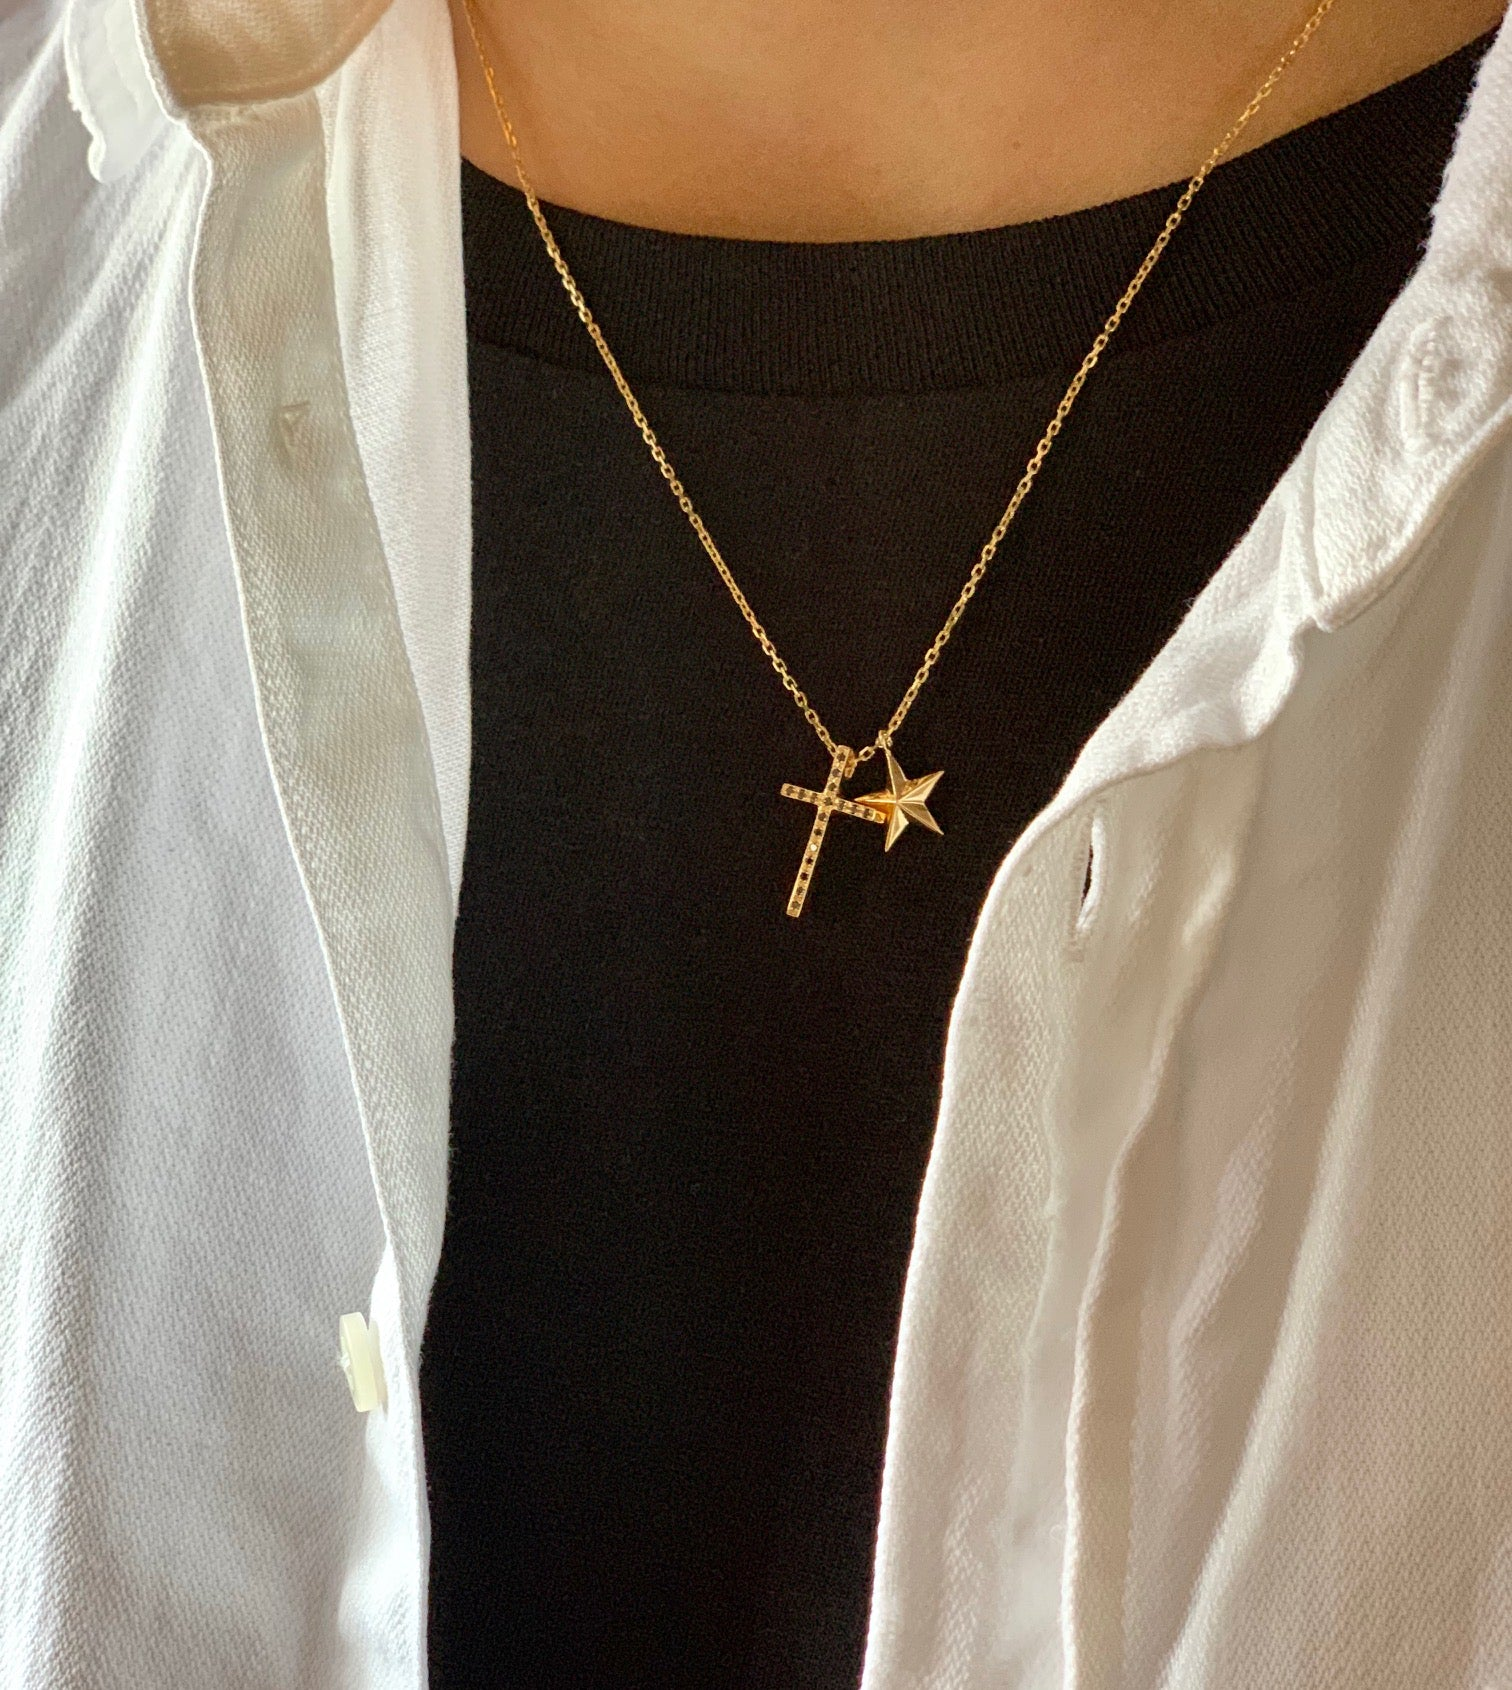 CROSS×STAR NECKLACE